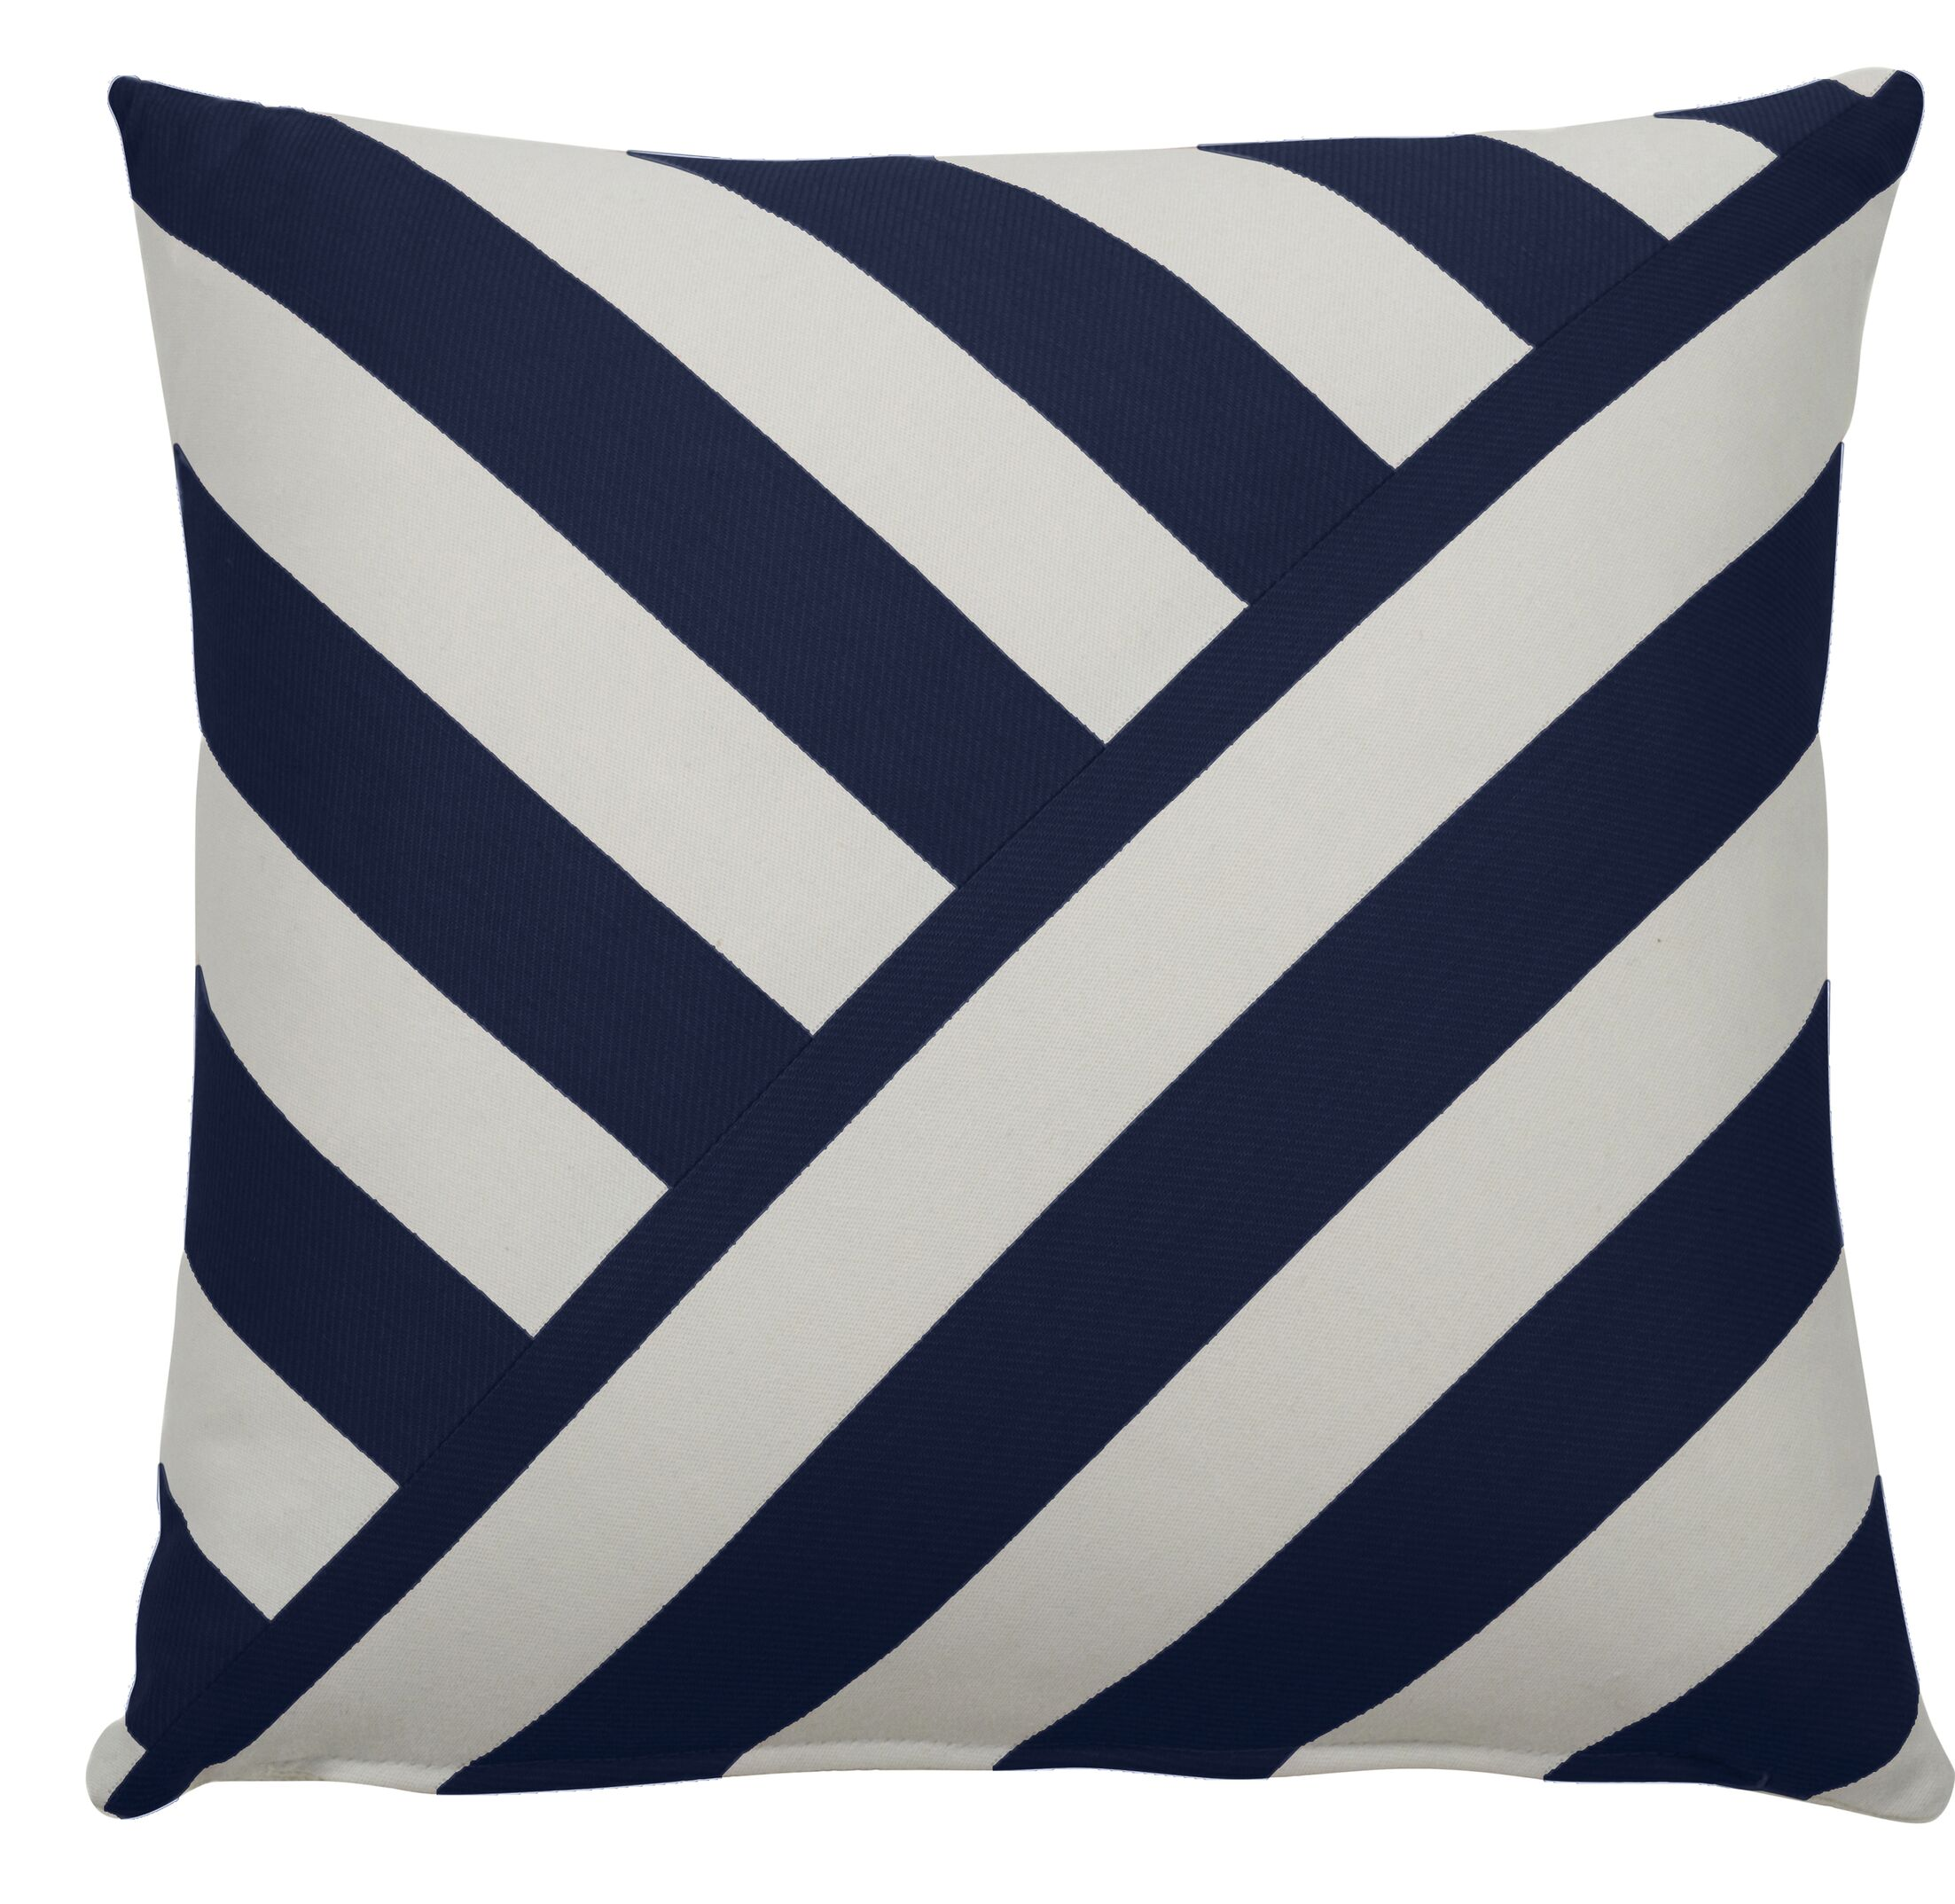 Halo Indoor/Outdoor Throw Pillow (Set of 2) Color: Indigo, Size: 24